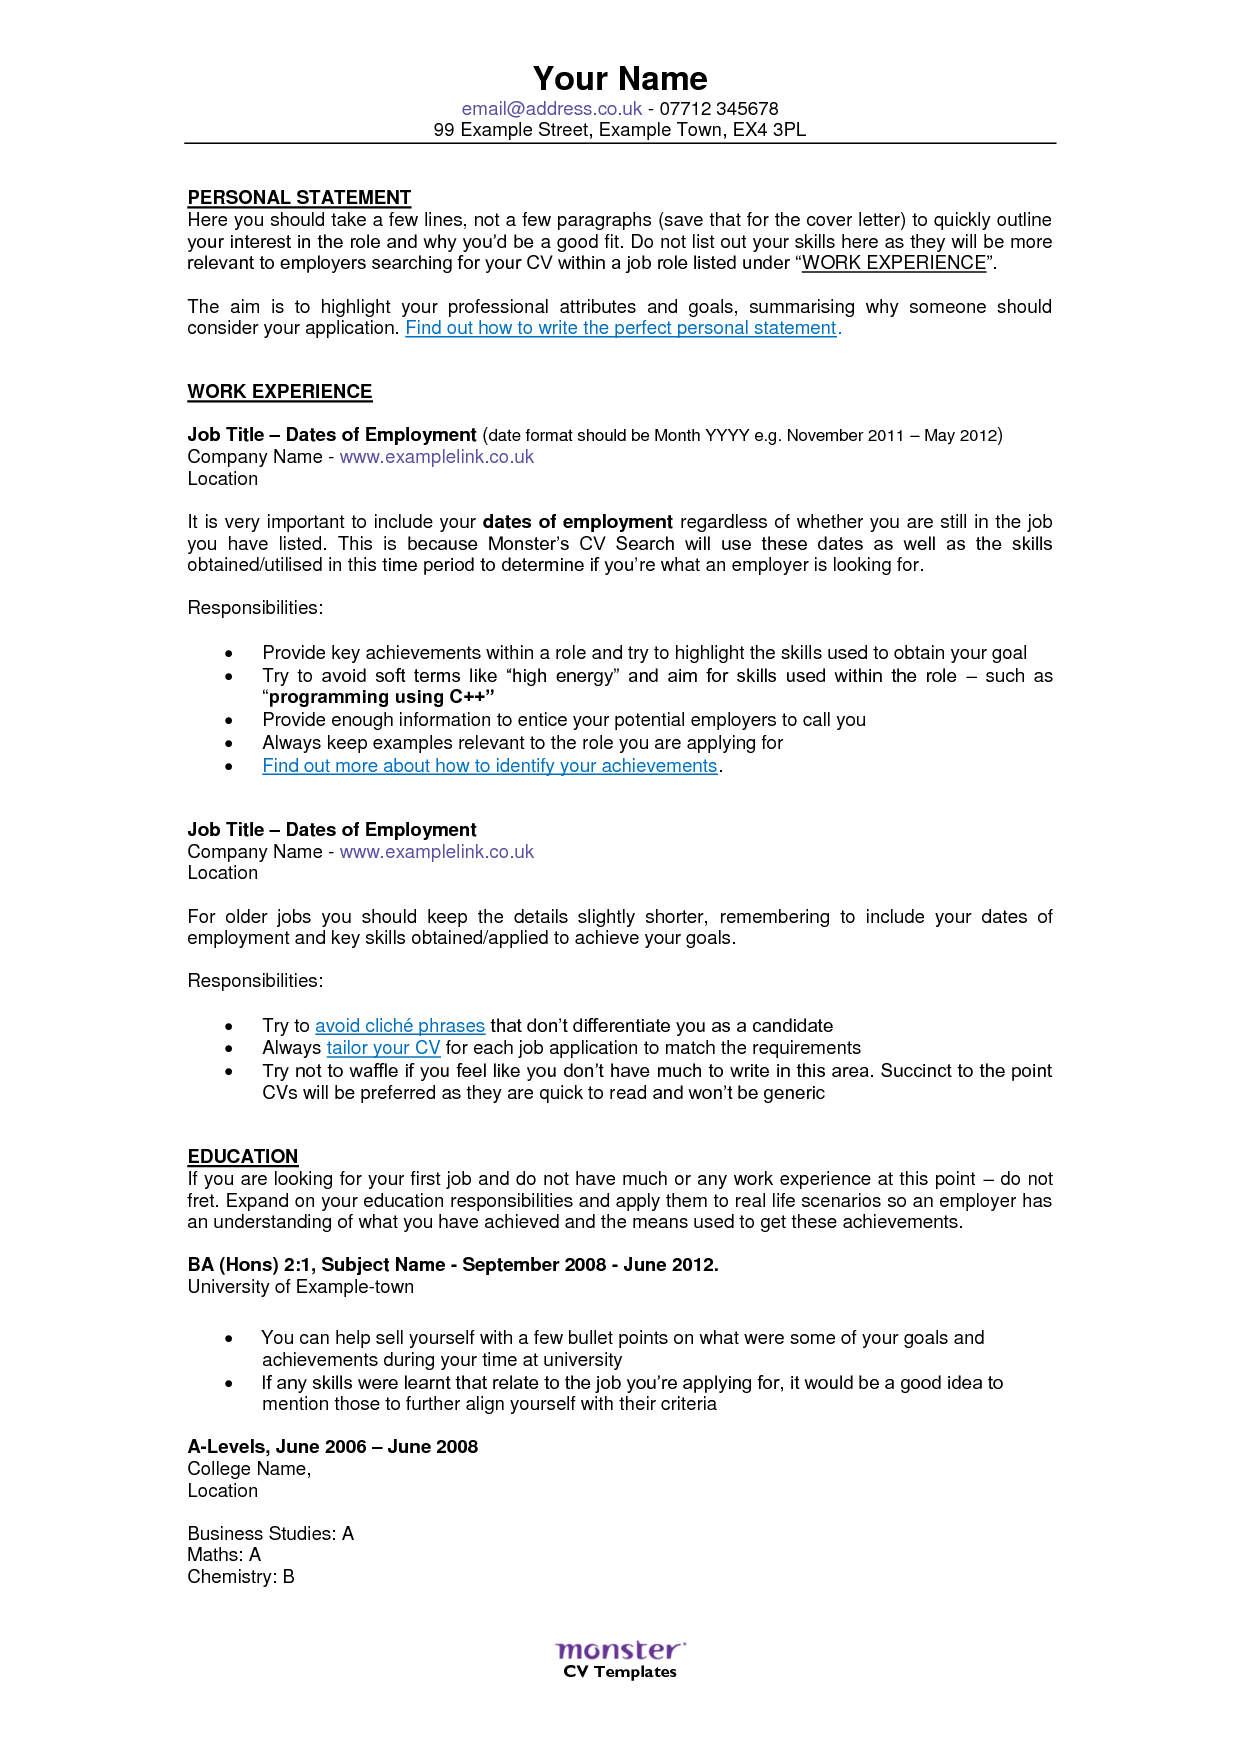 cover letter samples monster template search resumes montreal - Sample Cover Letter Monster